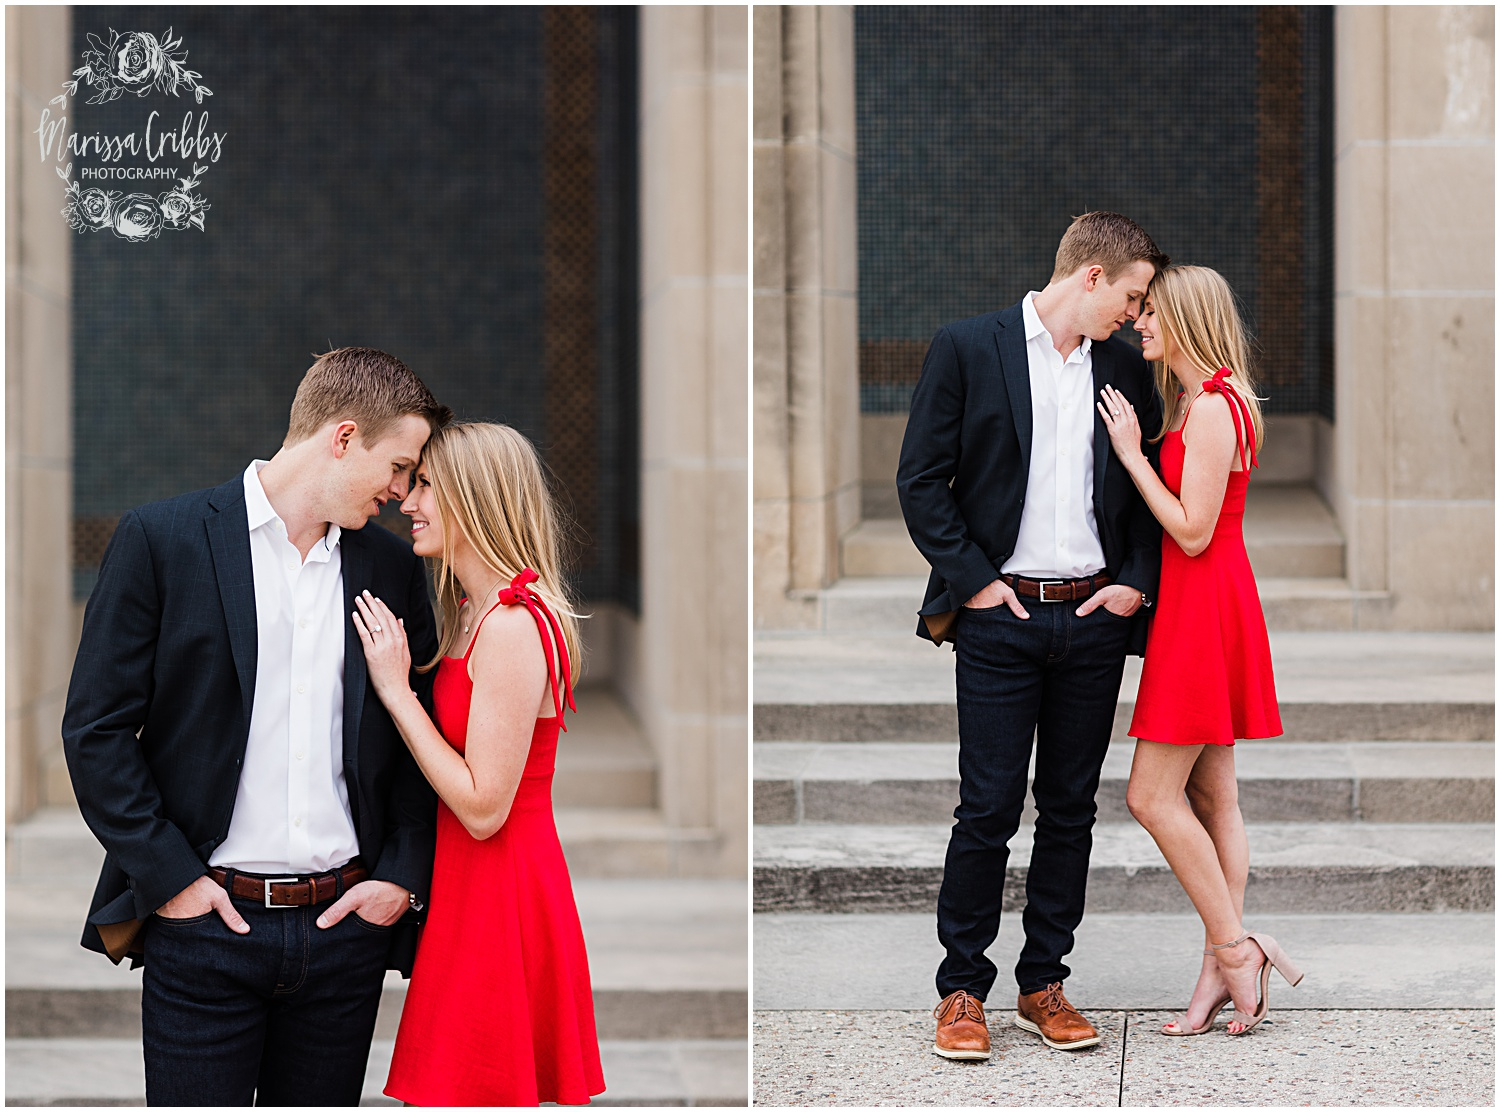 MADDY & KYLE ENGAGEMENT | MARISSA CRIBBS PHOTOGRAPHY_7629.jpg